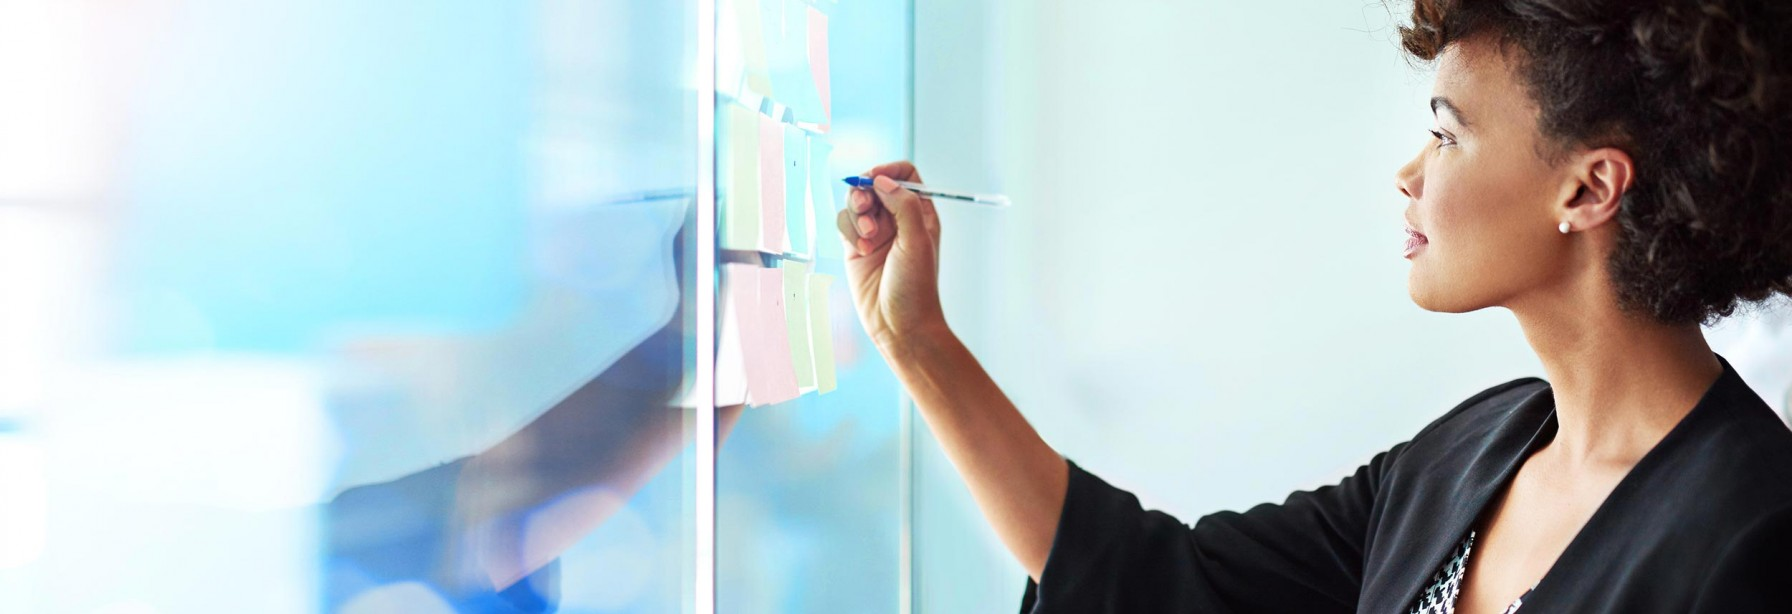 Woman writing on a glass board